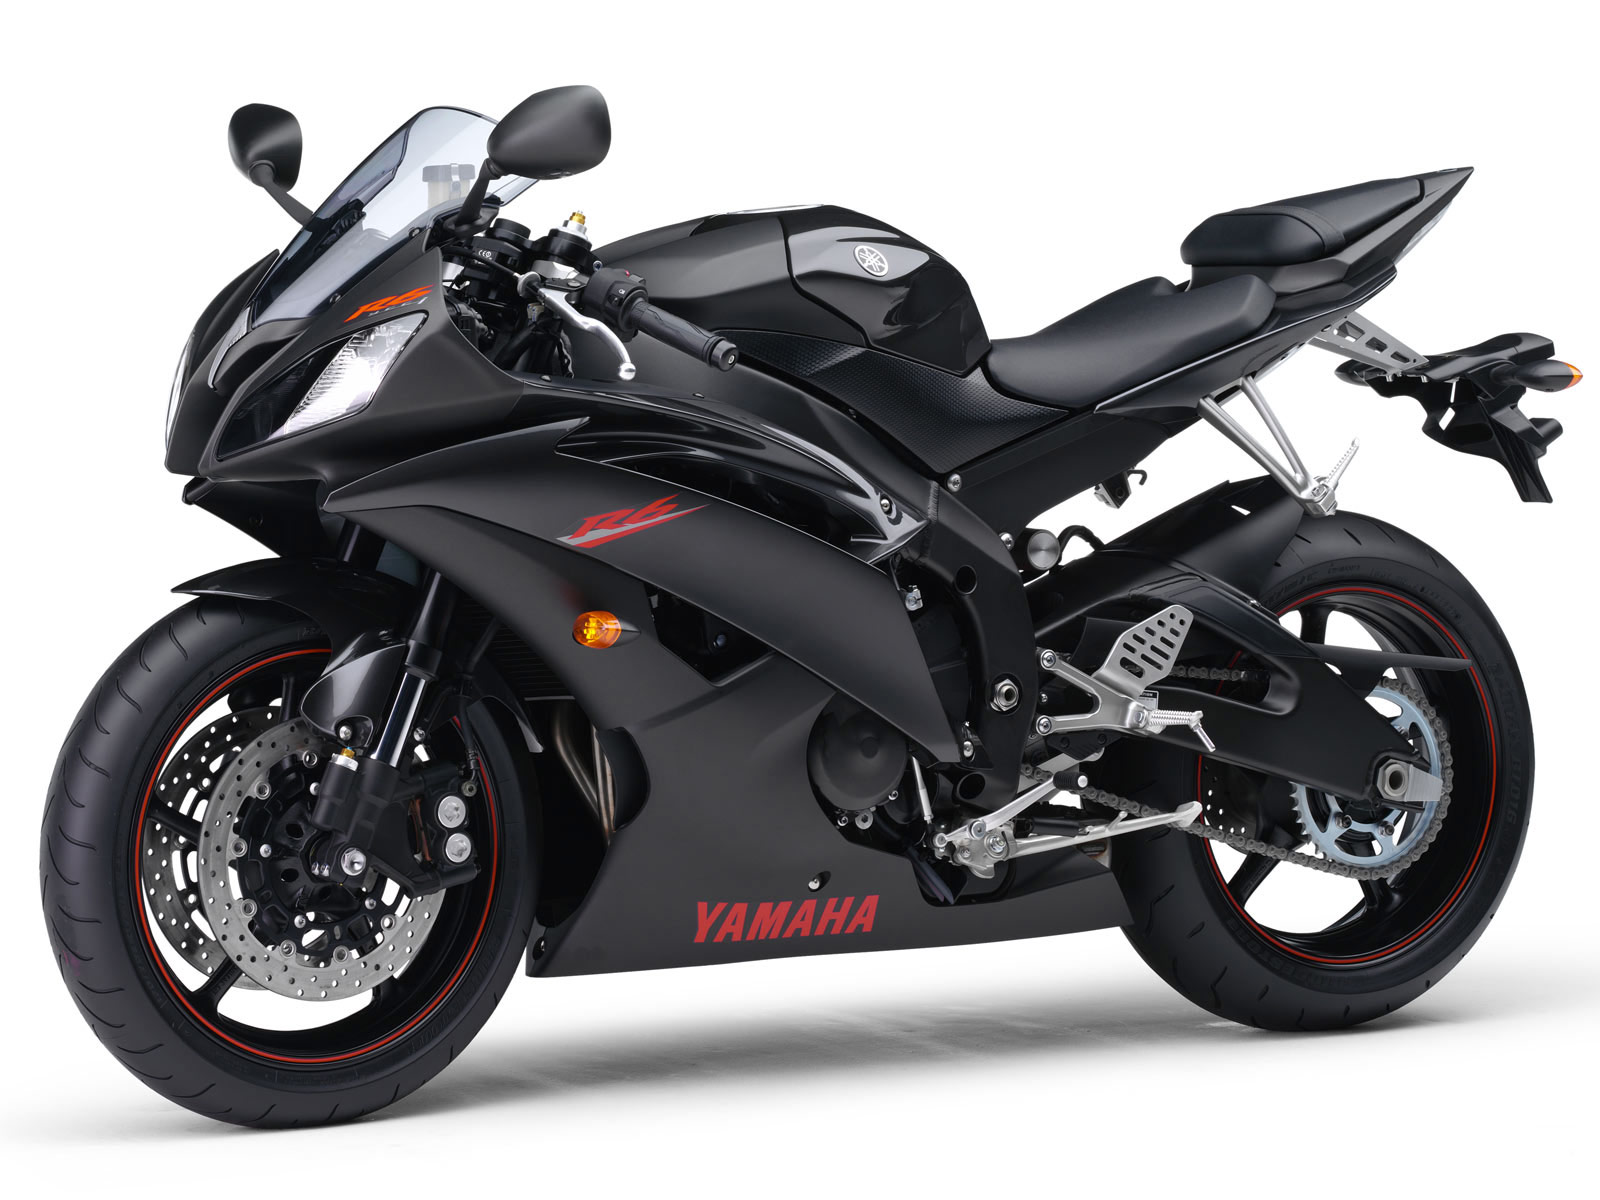 yzf r6 motorcycle pictures review and specifications 2008 yamaha. Black Bedroom Furniture Sets. Home Design Ideas